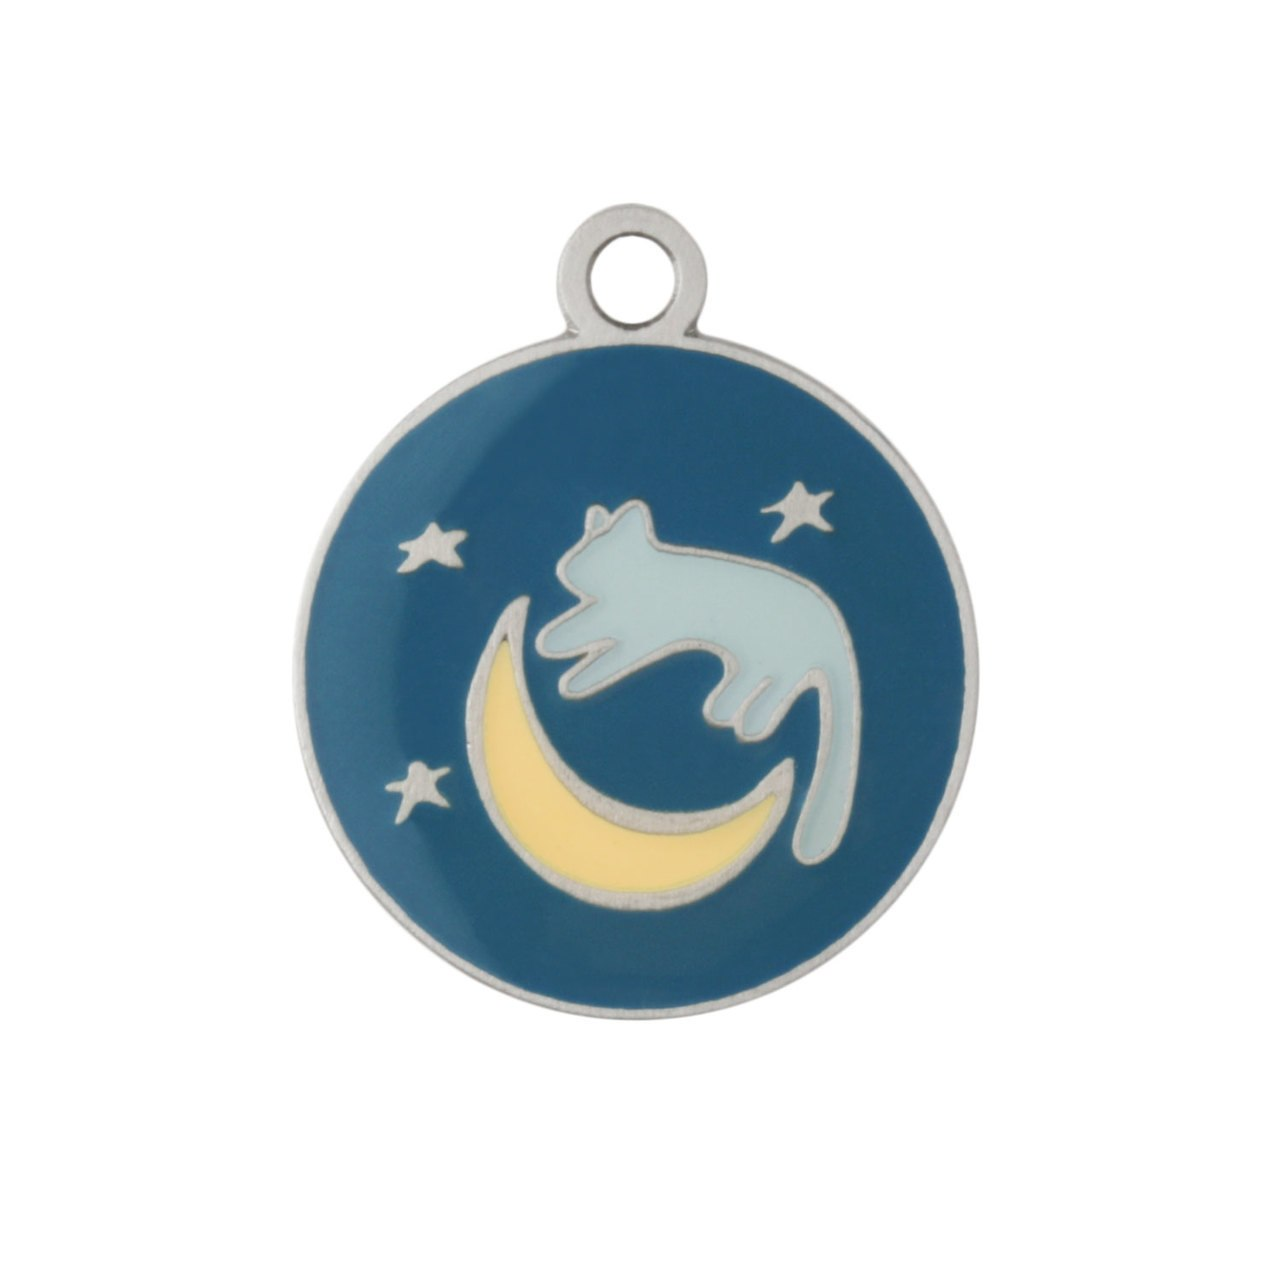 Painted Designer Cat ID Tags by Andrew Cat over the Moon